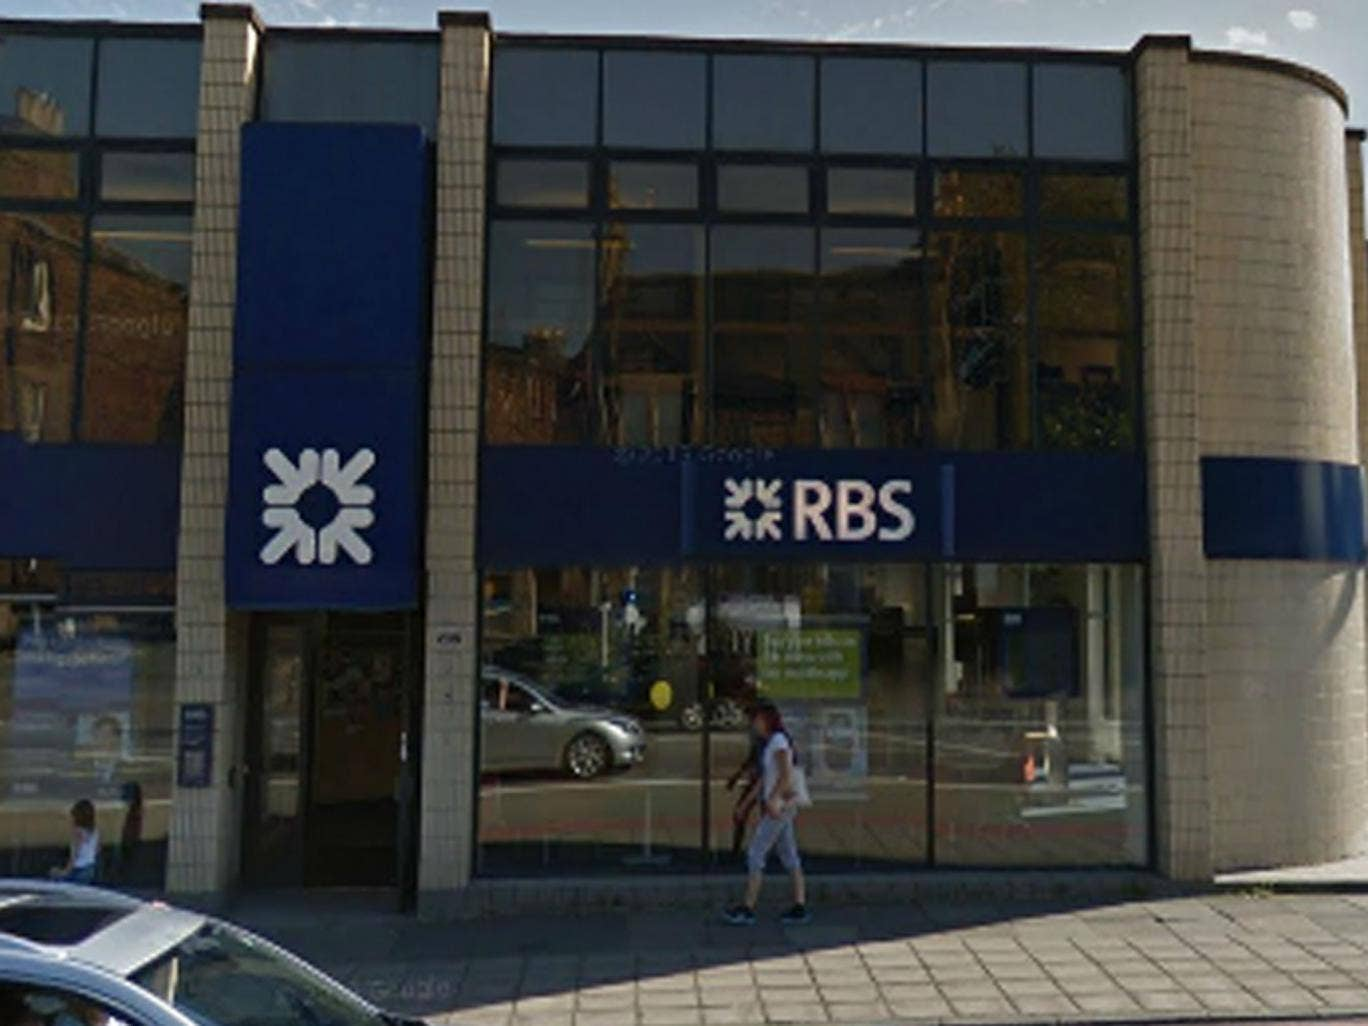 Royal Bank of Scotland in St John's Road, Edinburgh, where a man alleged stole thousands of pounds and got away in a taxi waiting outside